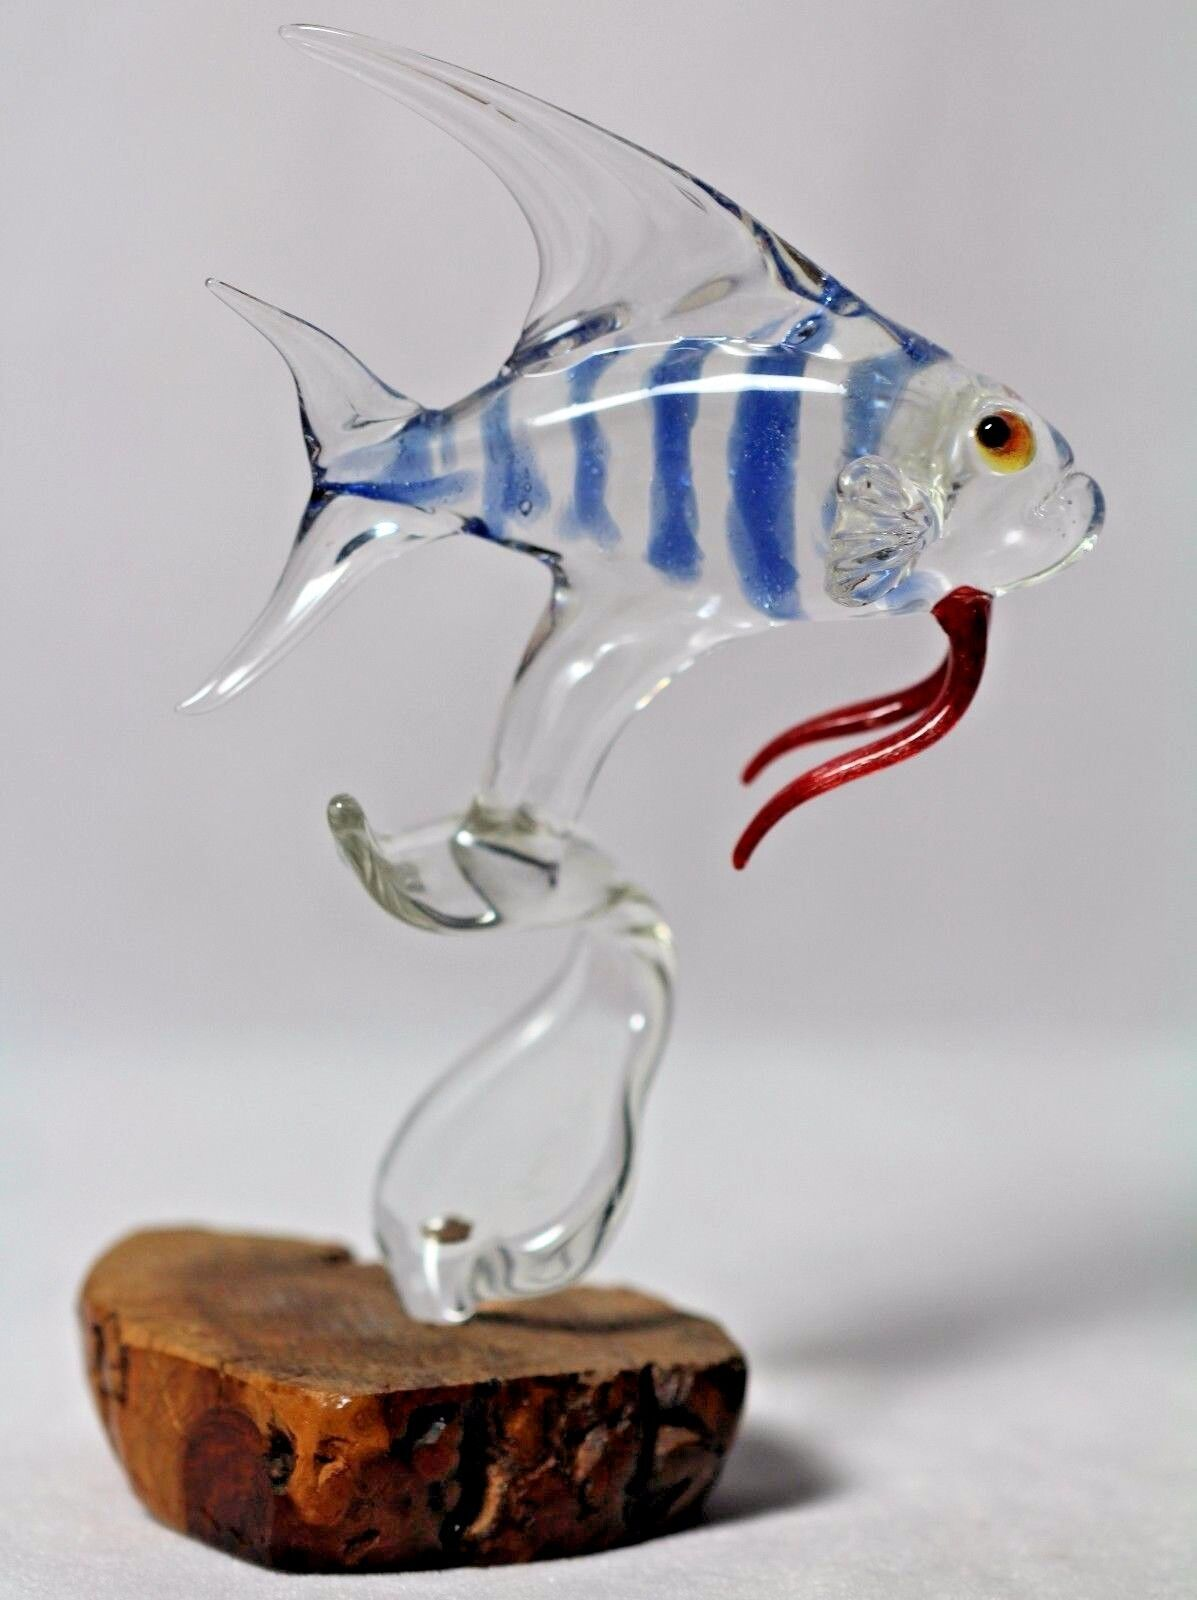 Awesome hand blown art glass fish signed louid 91 paperweight for Blown glass fish